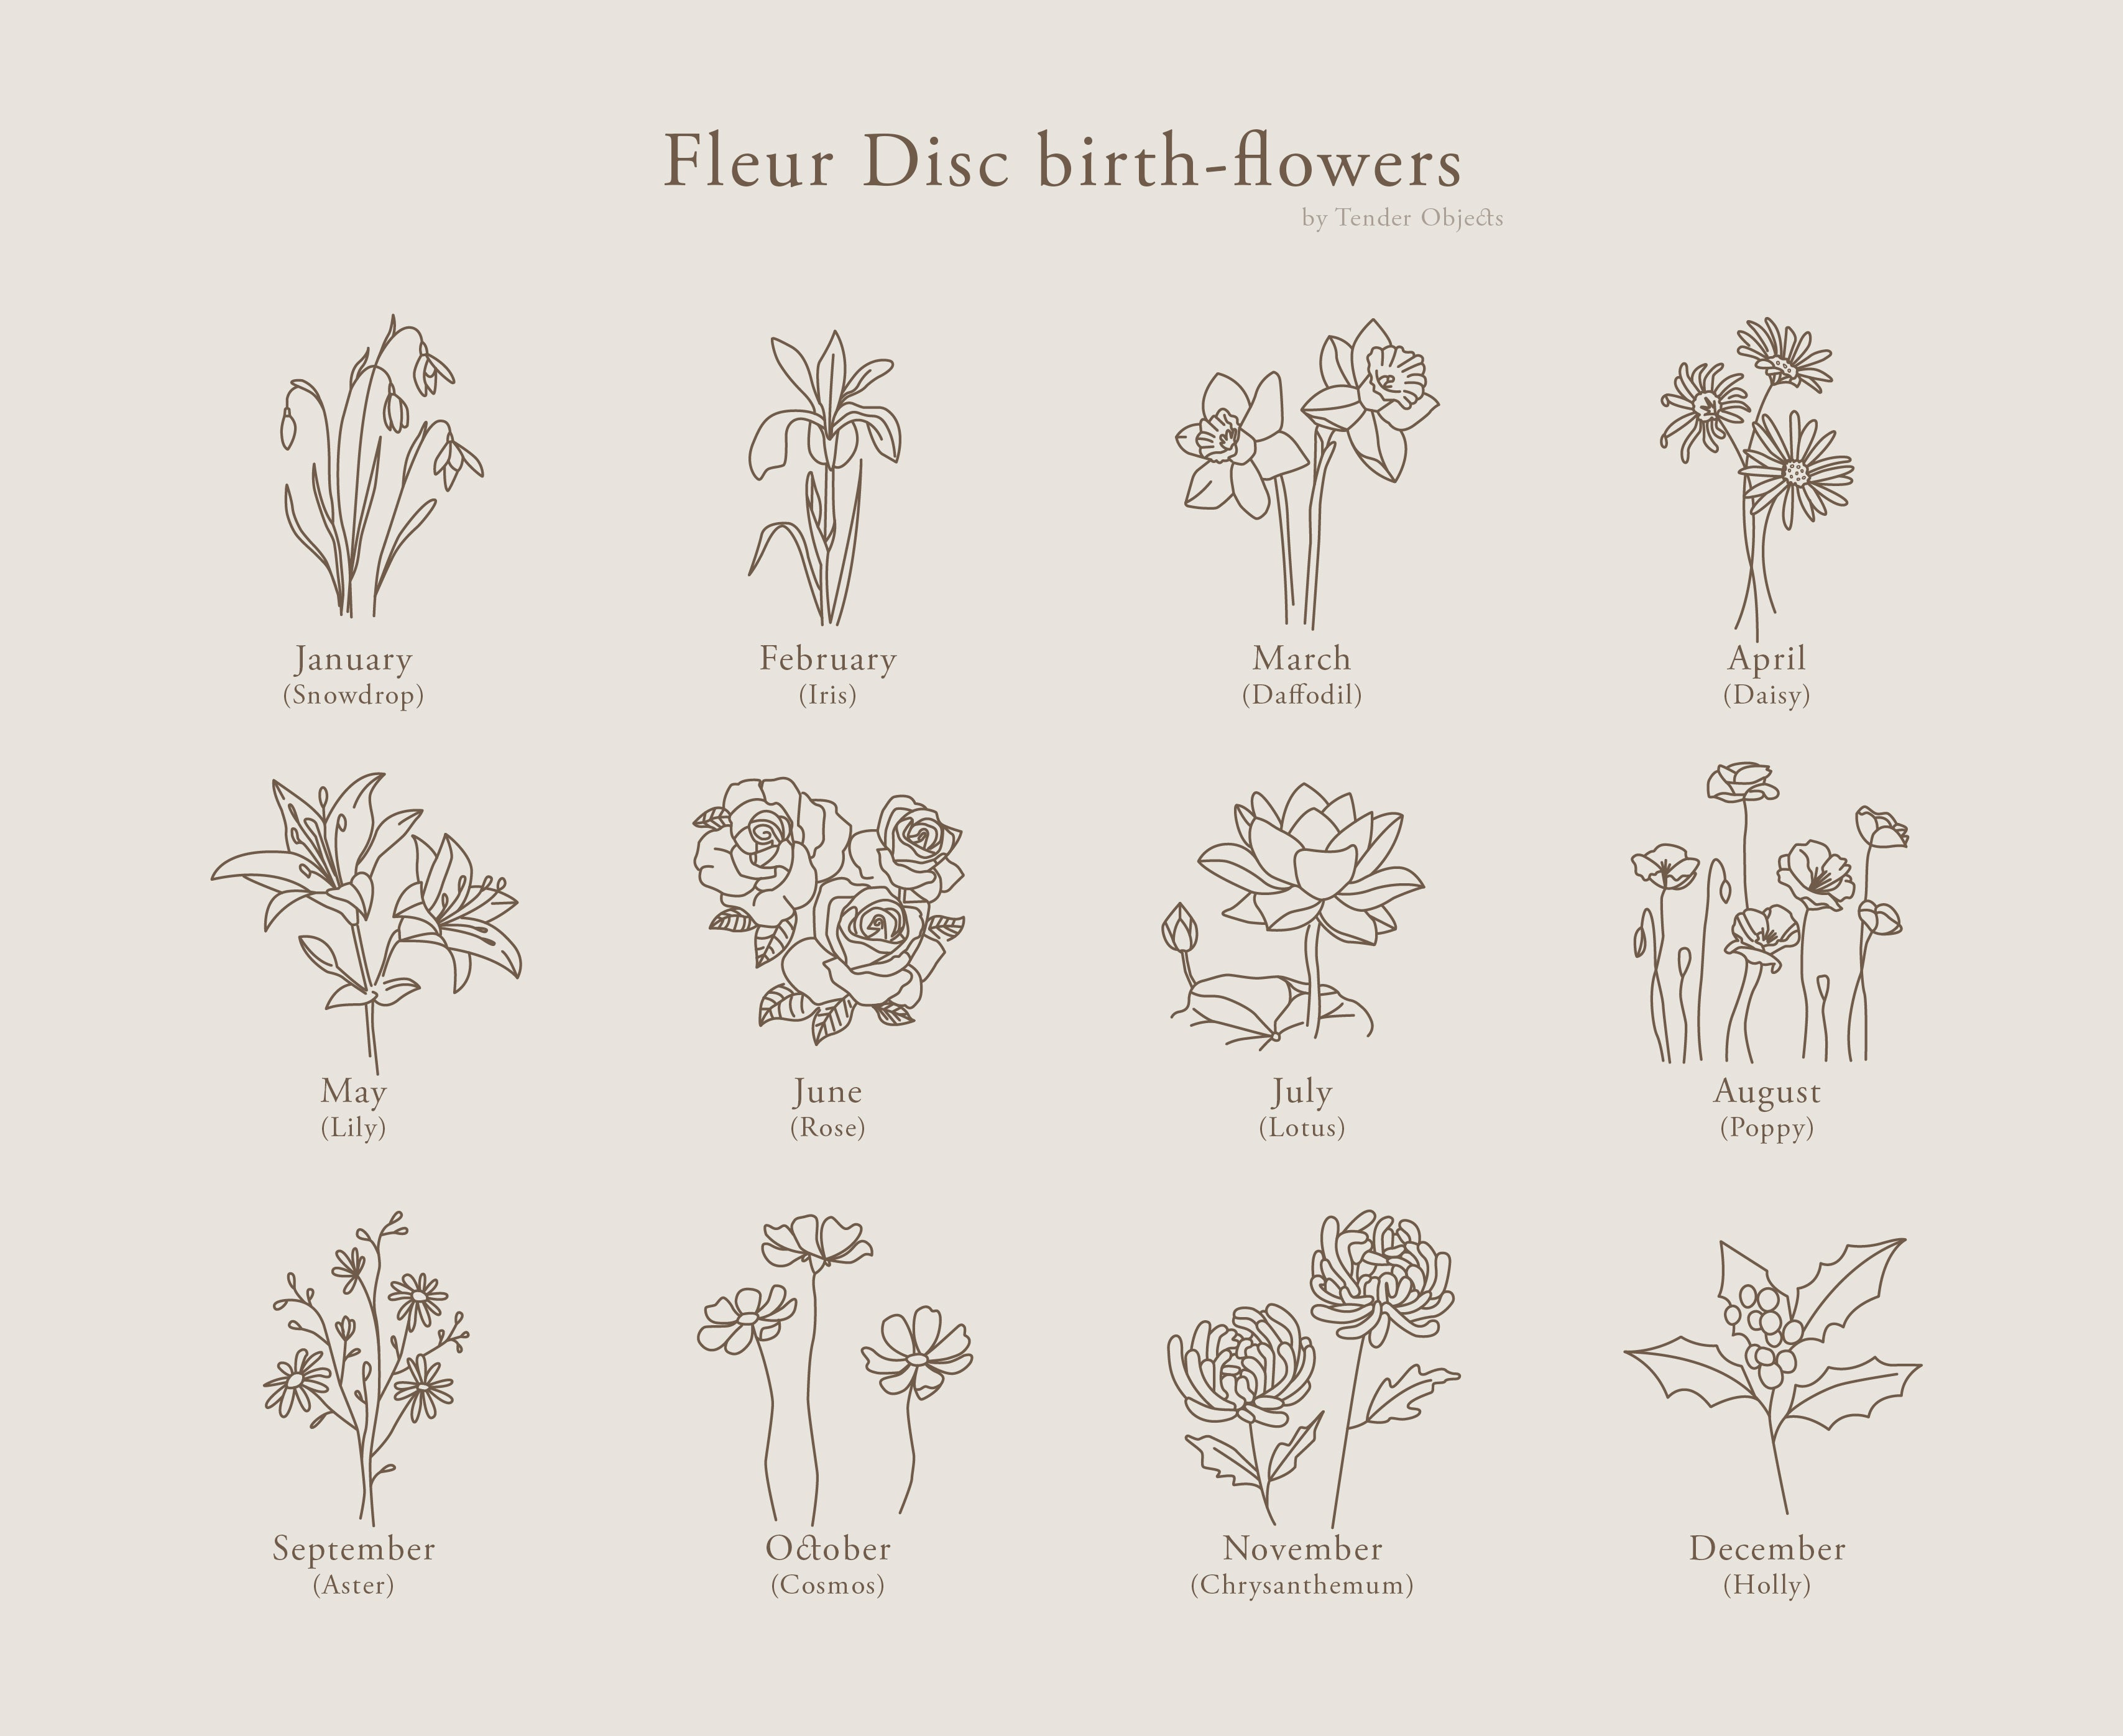 Fleur Disc birth-flowers